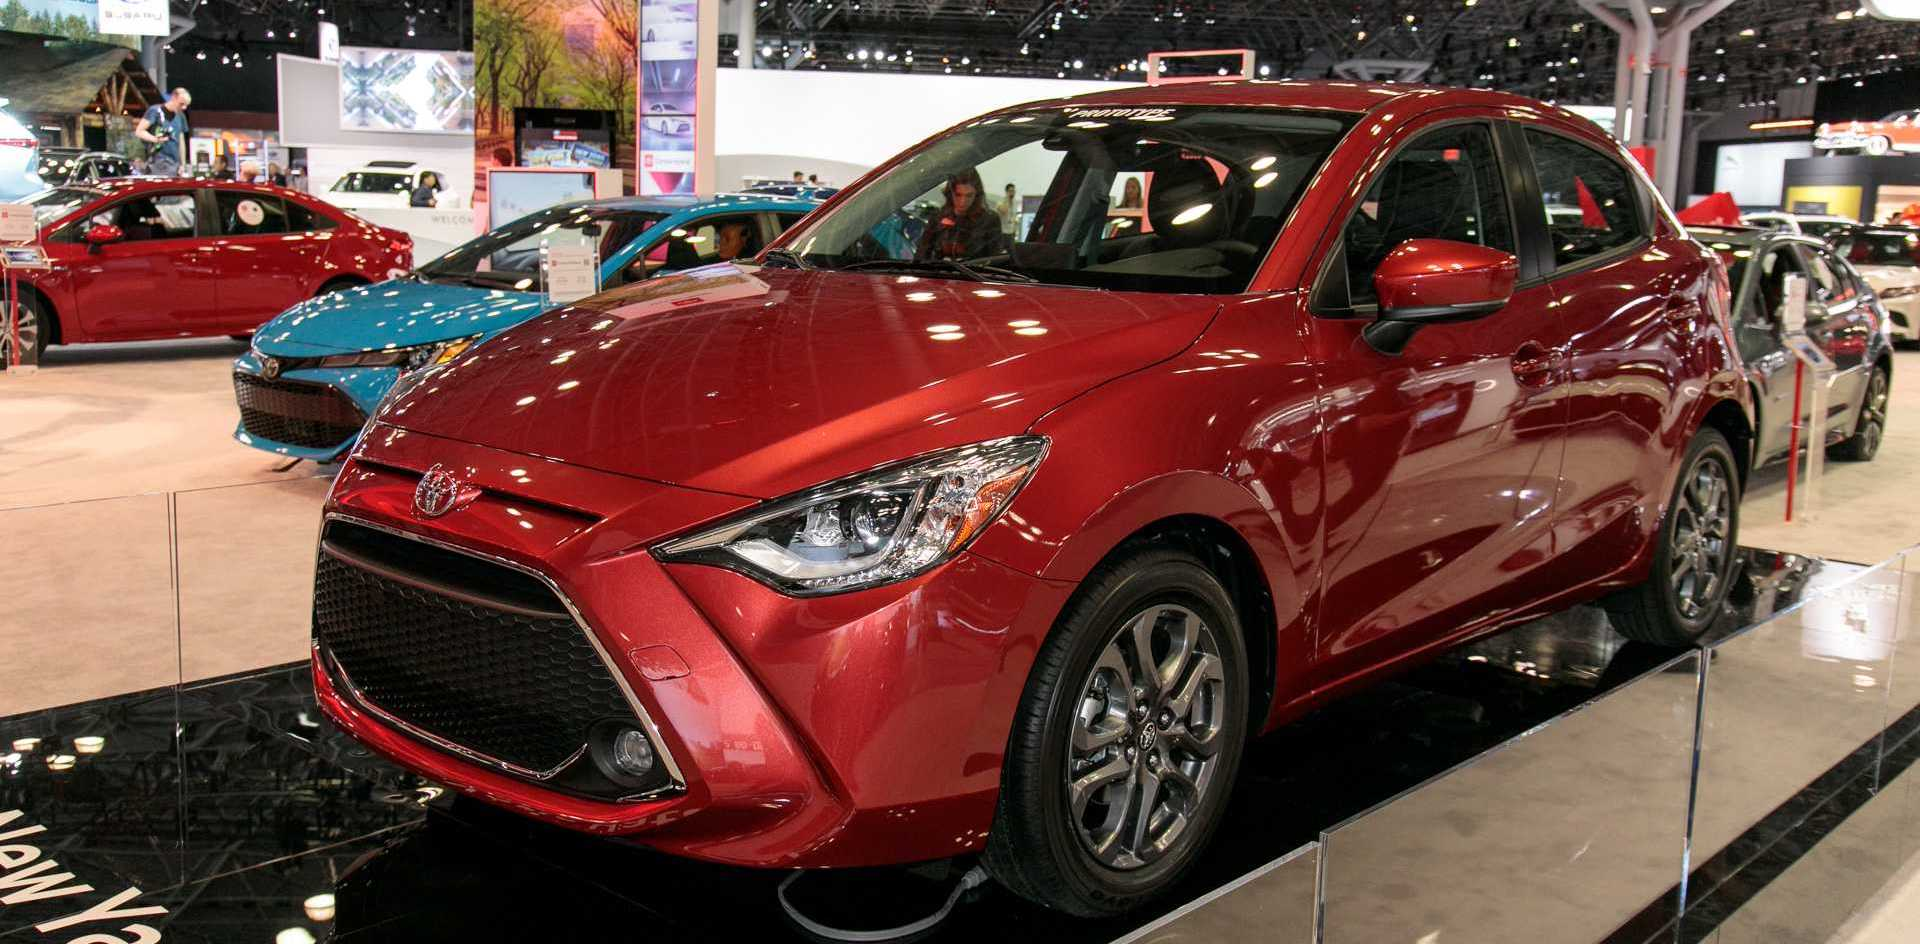 2020 Toyota Yaris Hatchback Debuts With Mazda 2 Bones